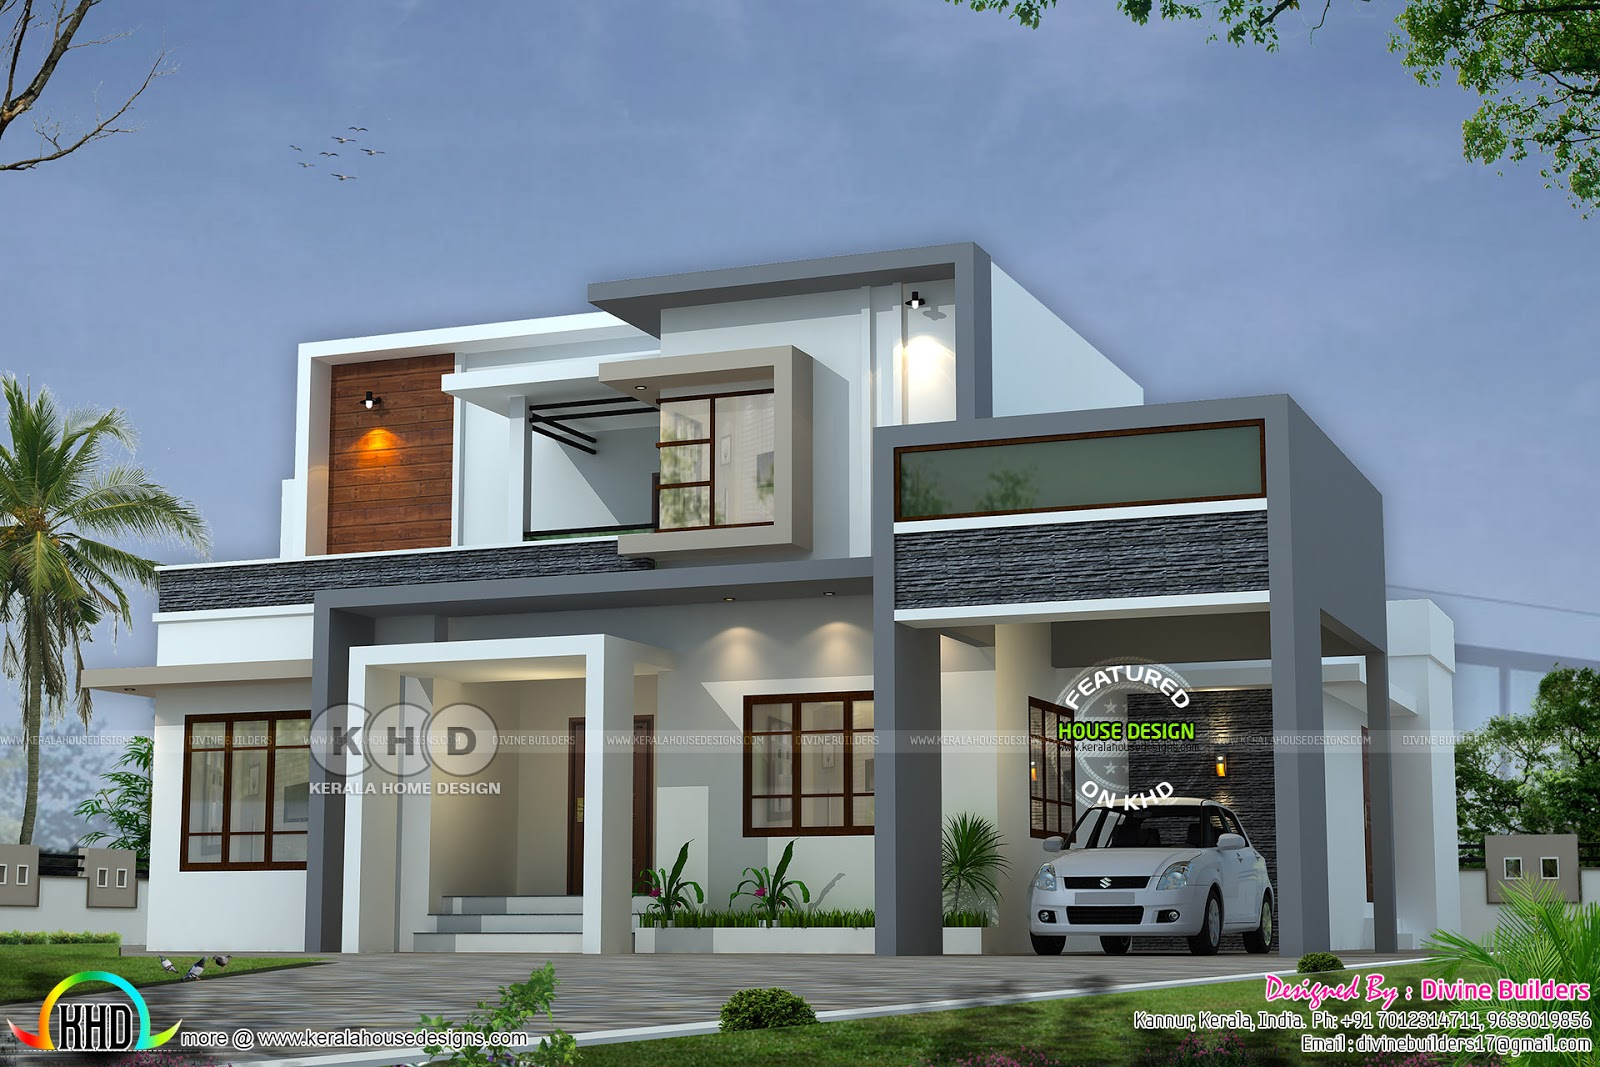 2017 kerala home design and floor plans for Home designs and plans